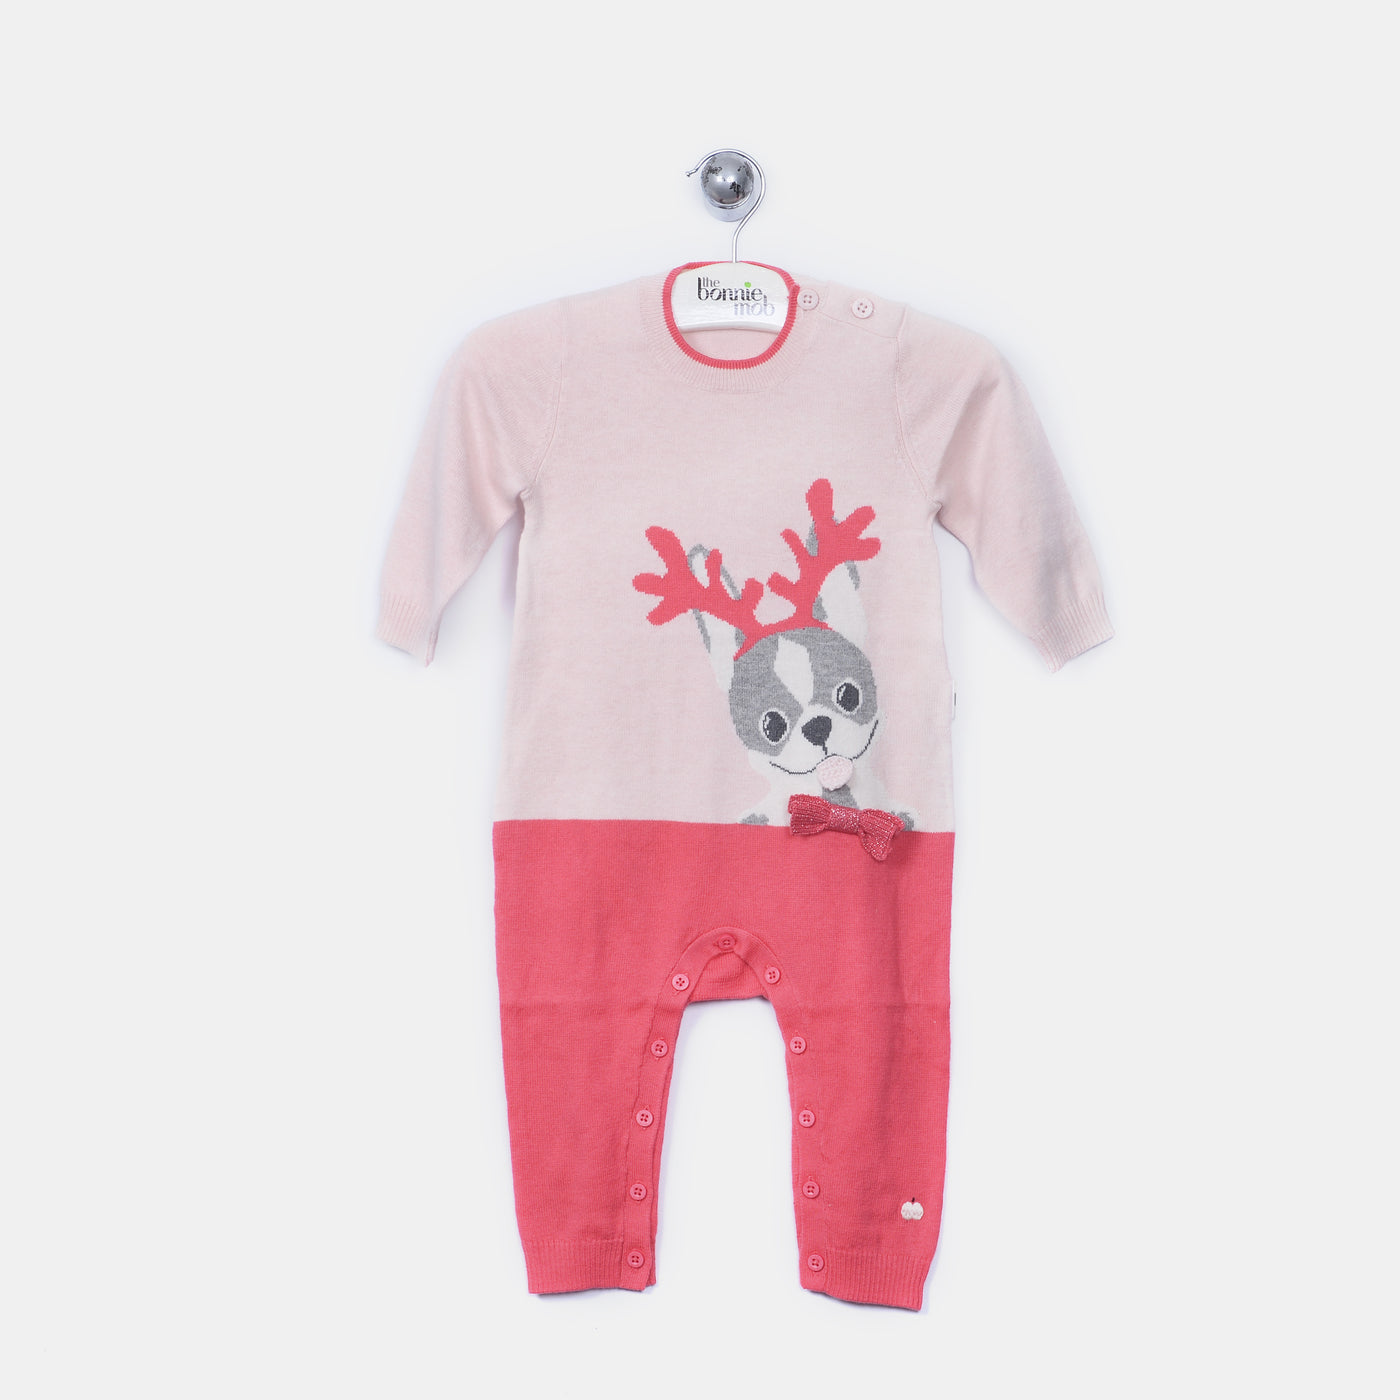 L-REEGAN - Reindeer Dog Playsuit - Baby Girl - Pink calico